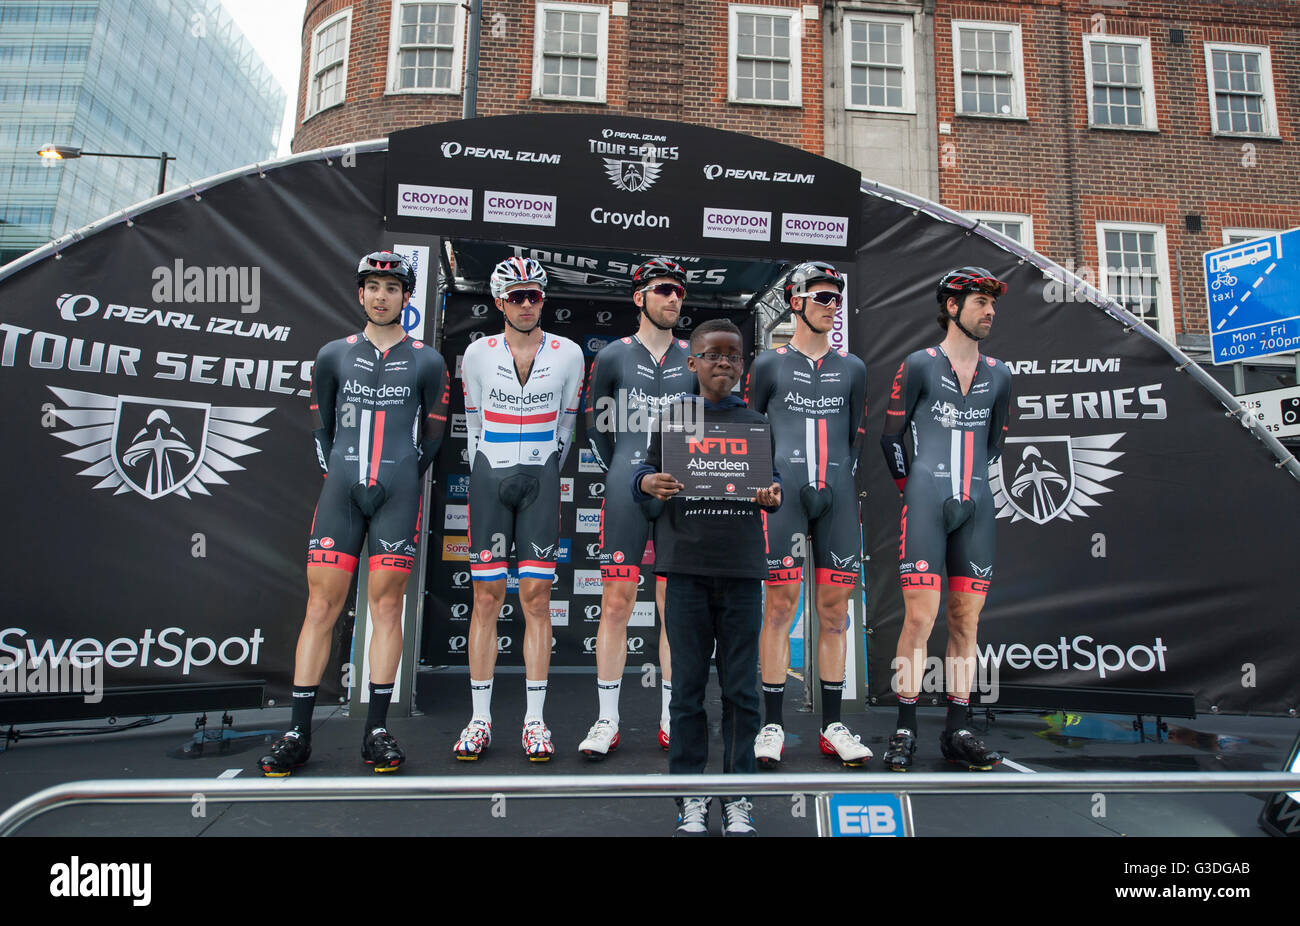 Croydon, London, UK. 7th June 2016. Pearl Izumi Tour Series round 9 evening race through the centre of Croydon. - Stock Image